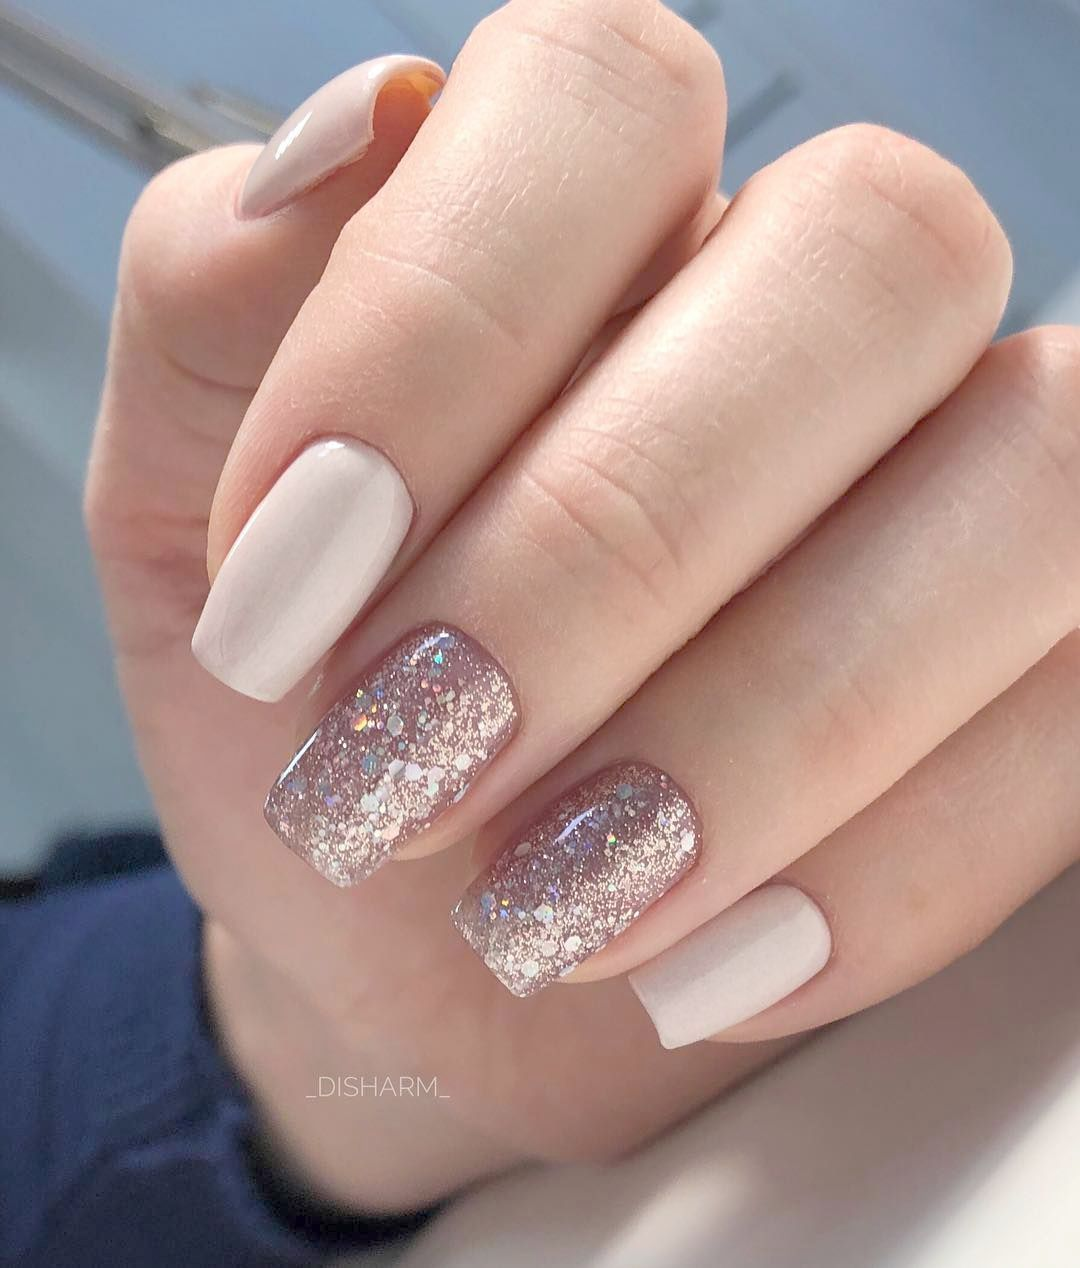 Home Blend Of Bites Fake Nails Neutral Nails Manicure